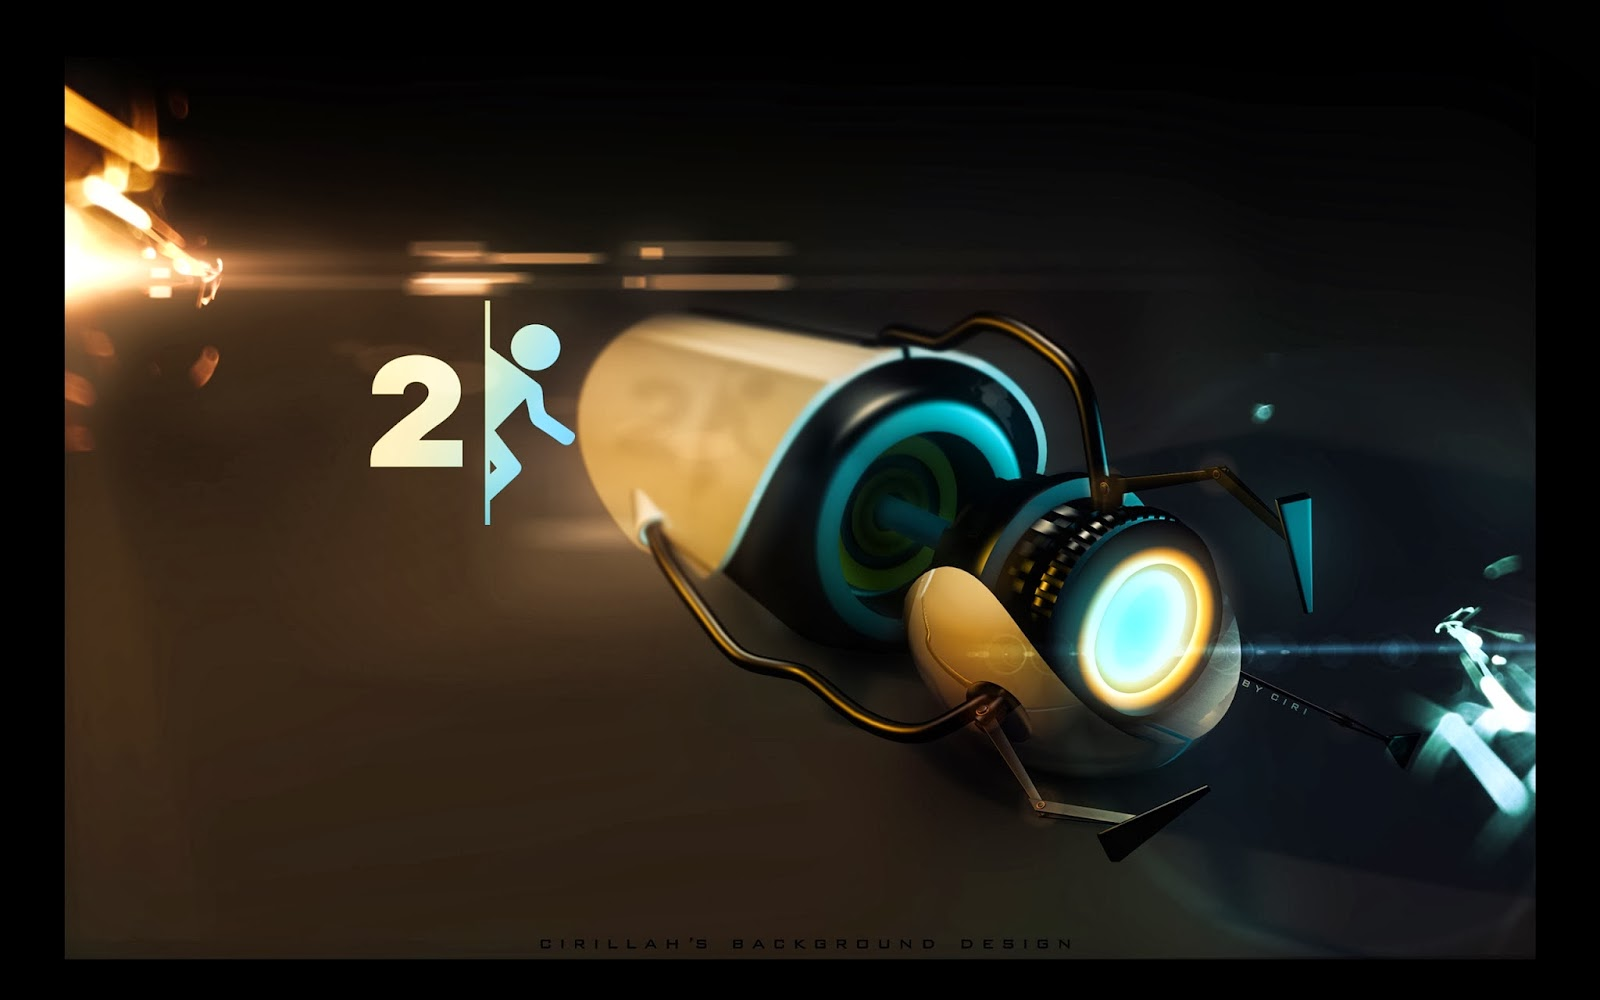 WallSheets Game Portal 2 Desktop Wallpapers and Backgrounds 1600x1000